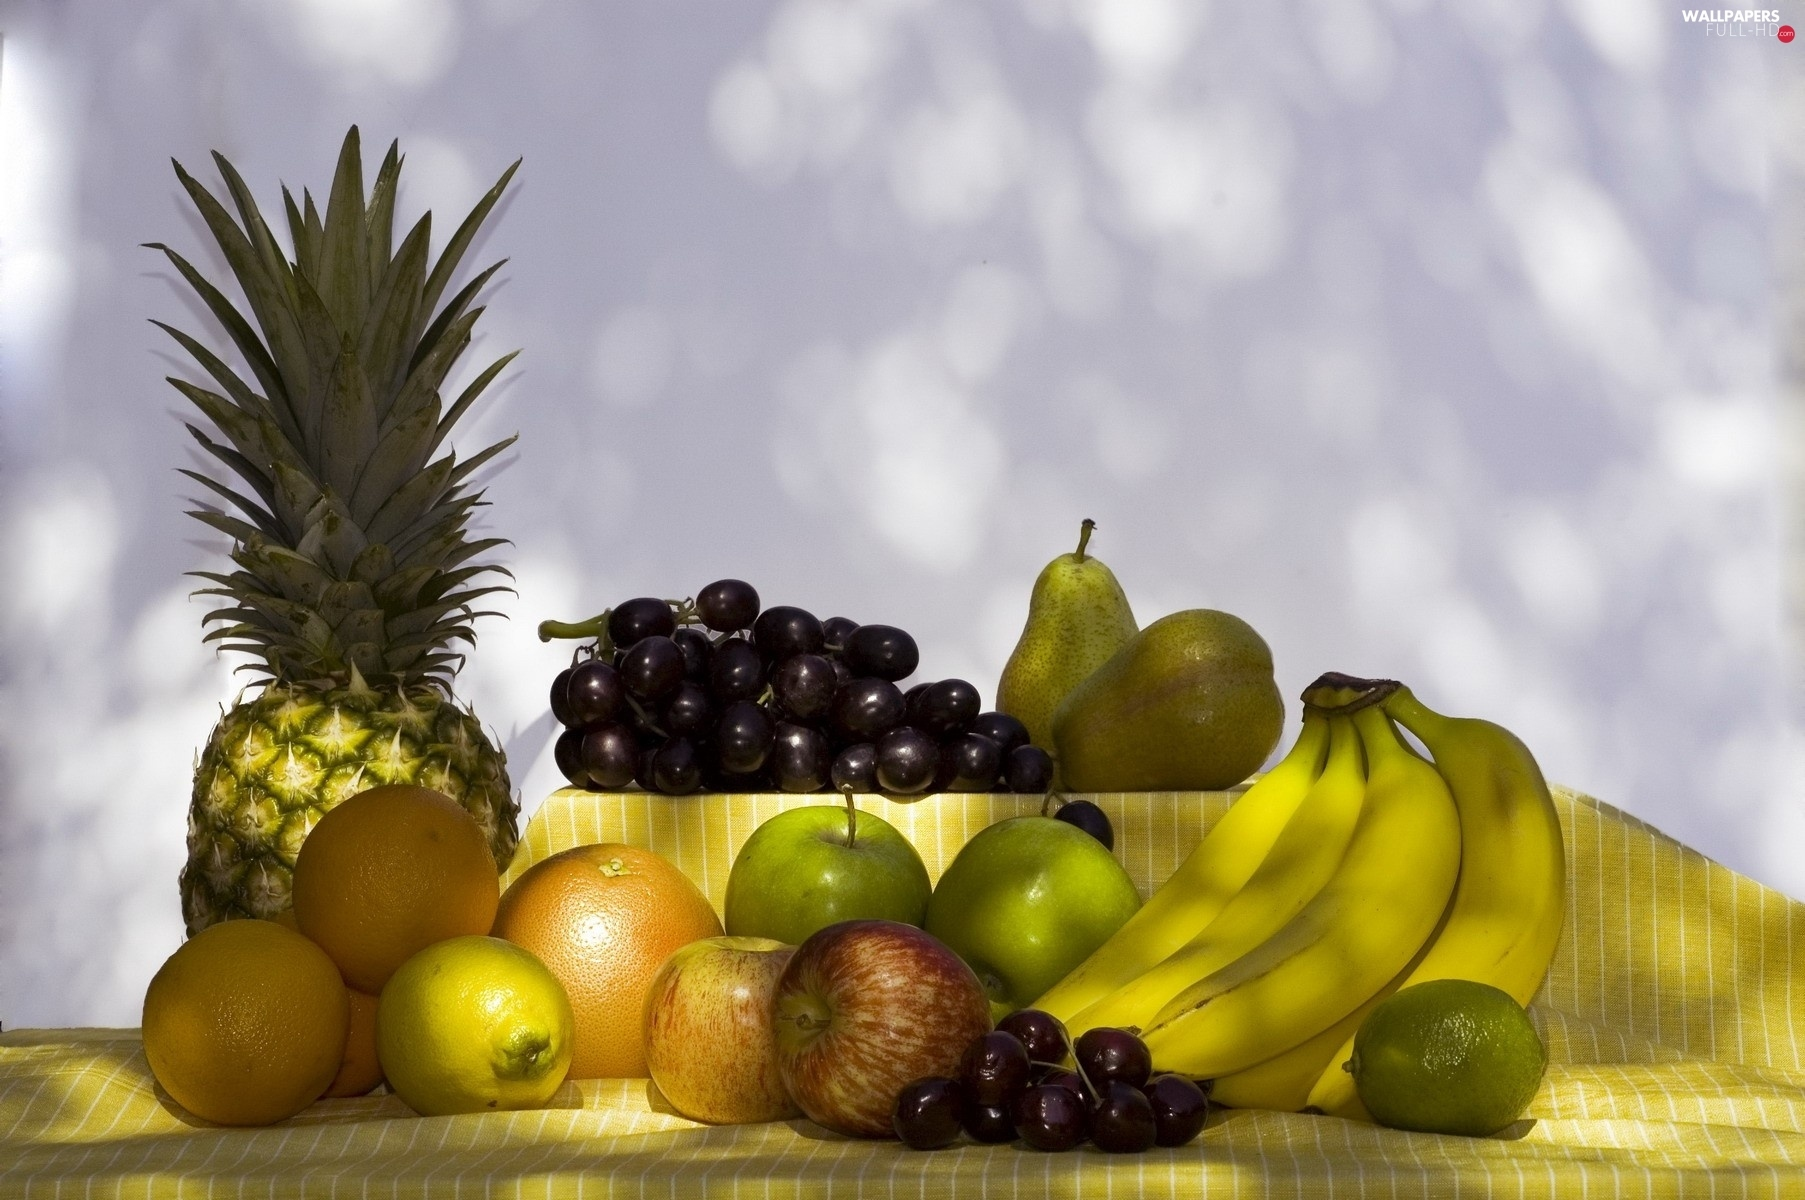 arranged, decoration, Fruits